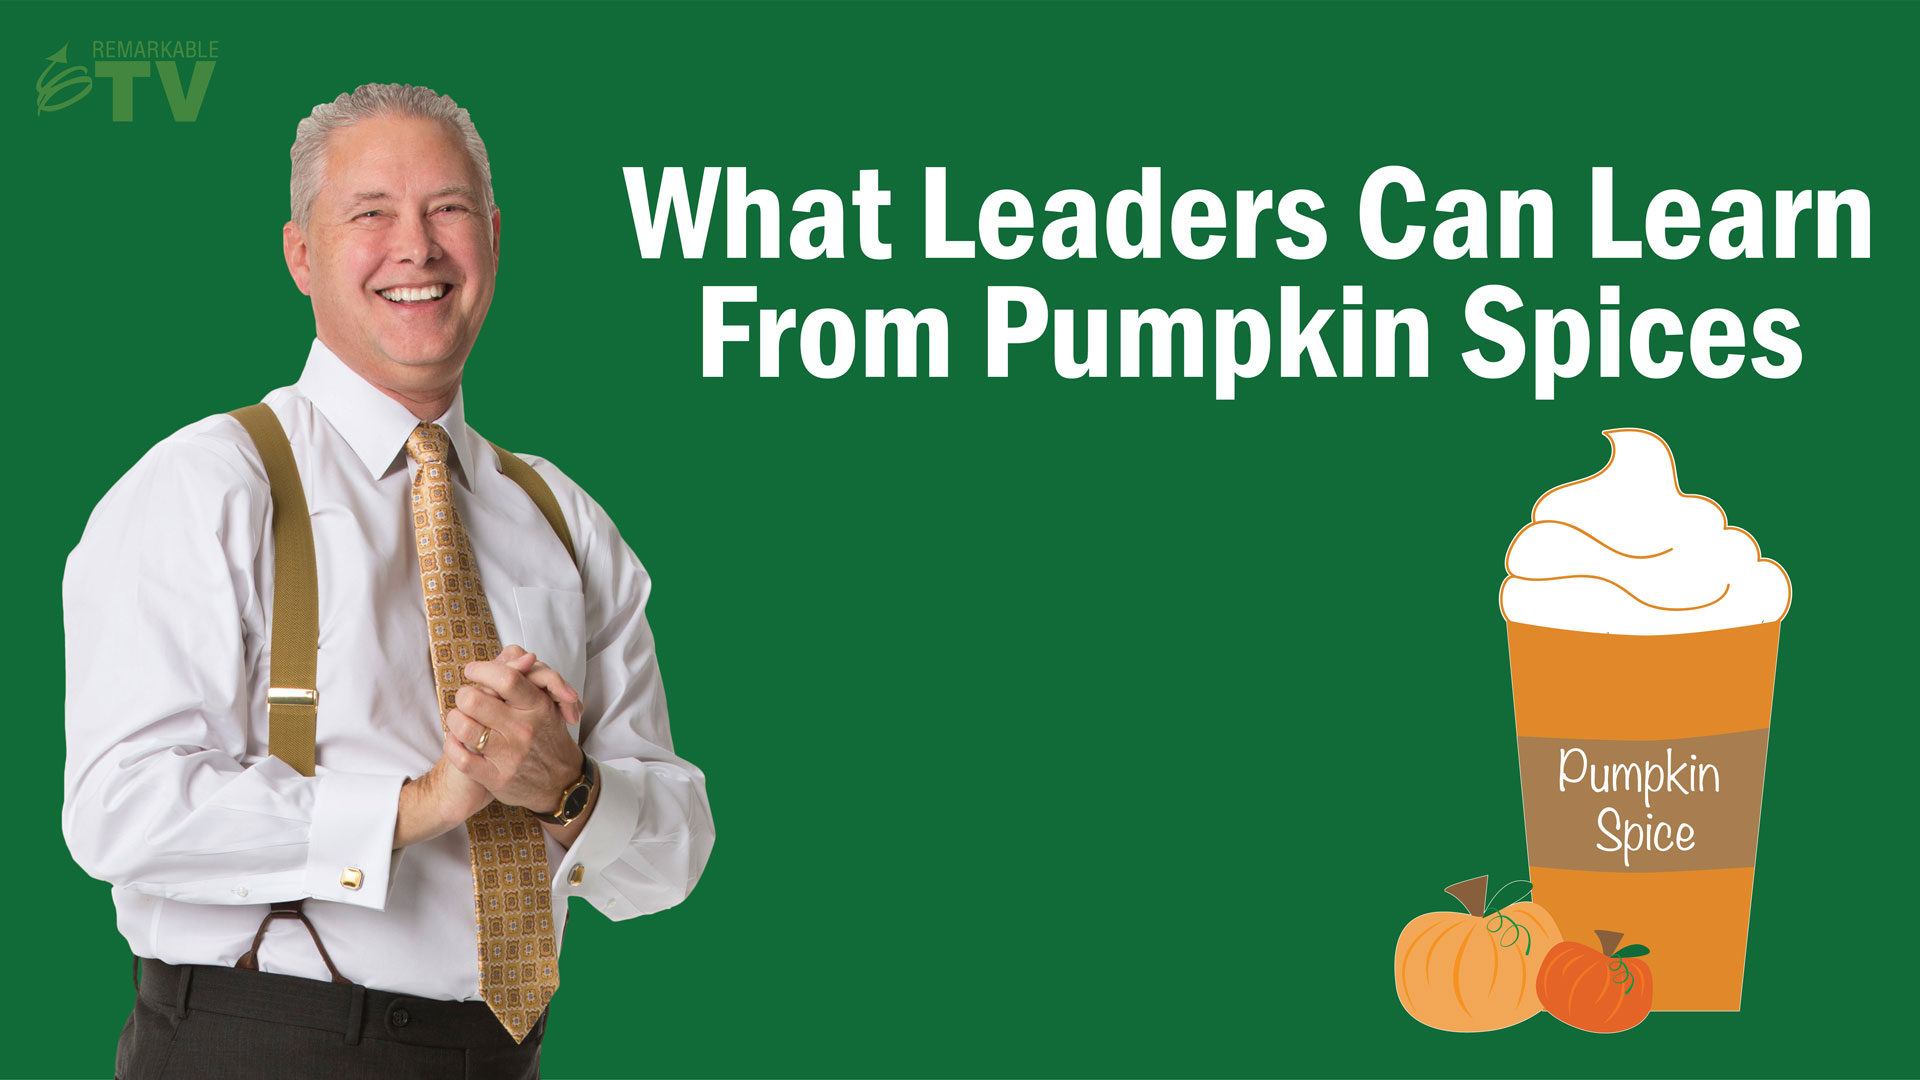 What leaders can learn from pumpkin spices